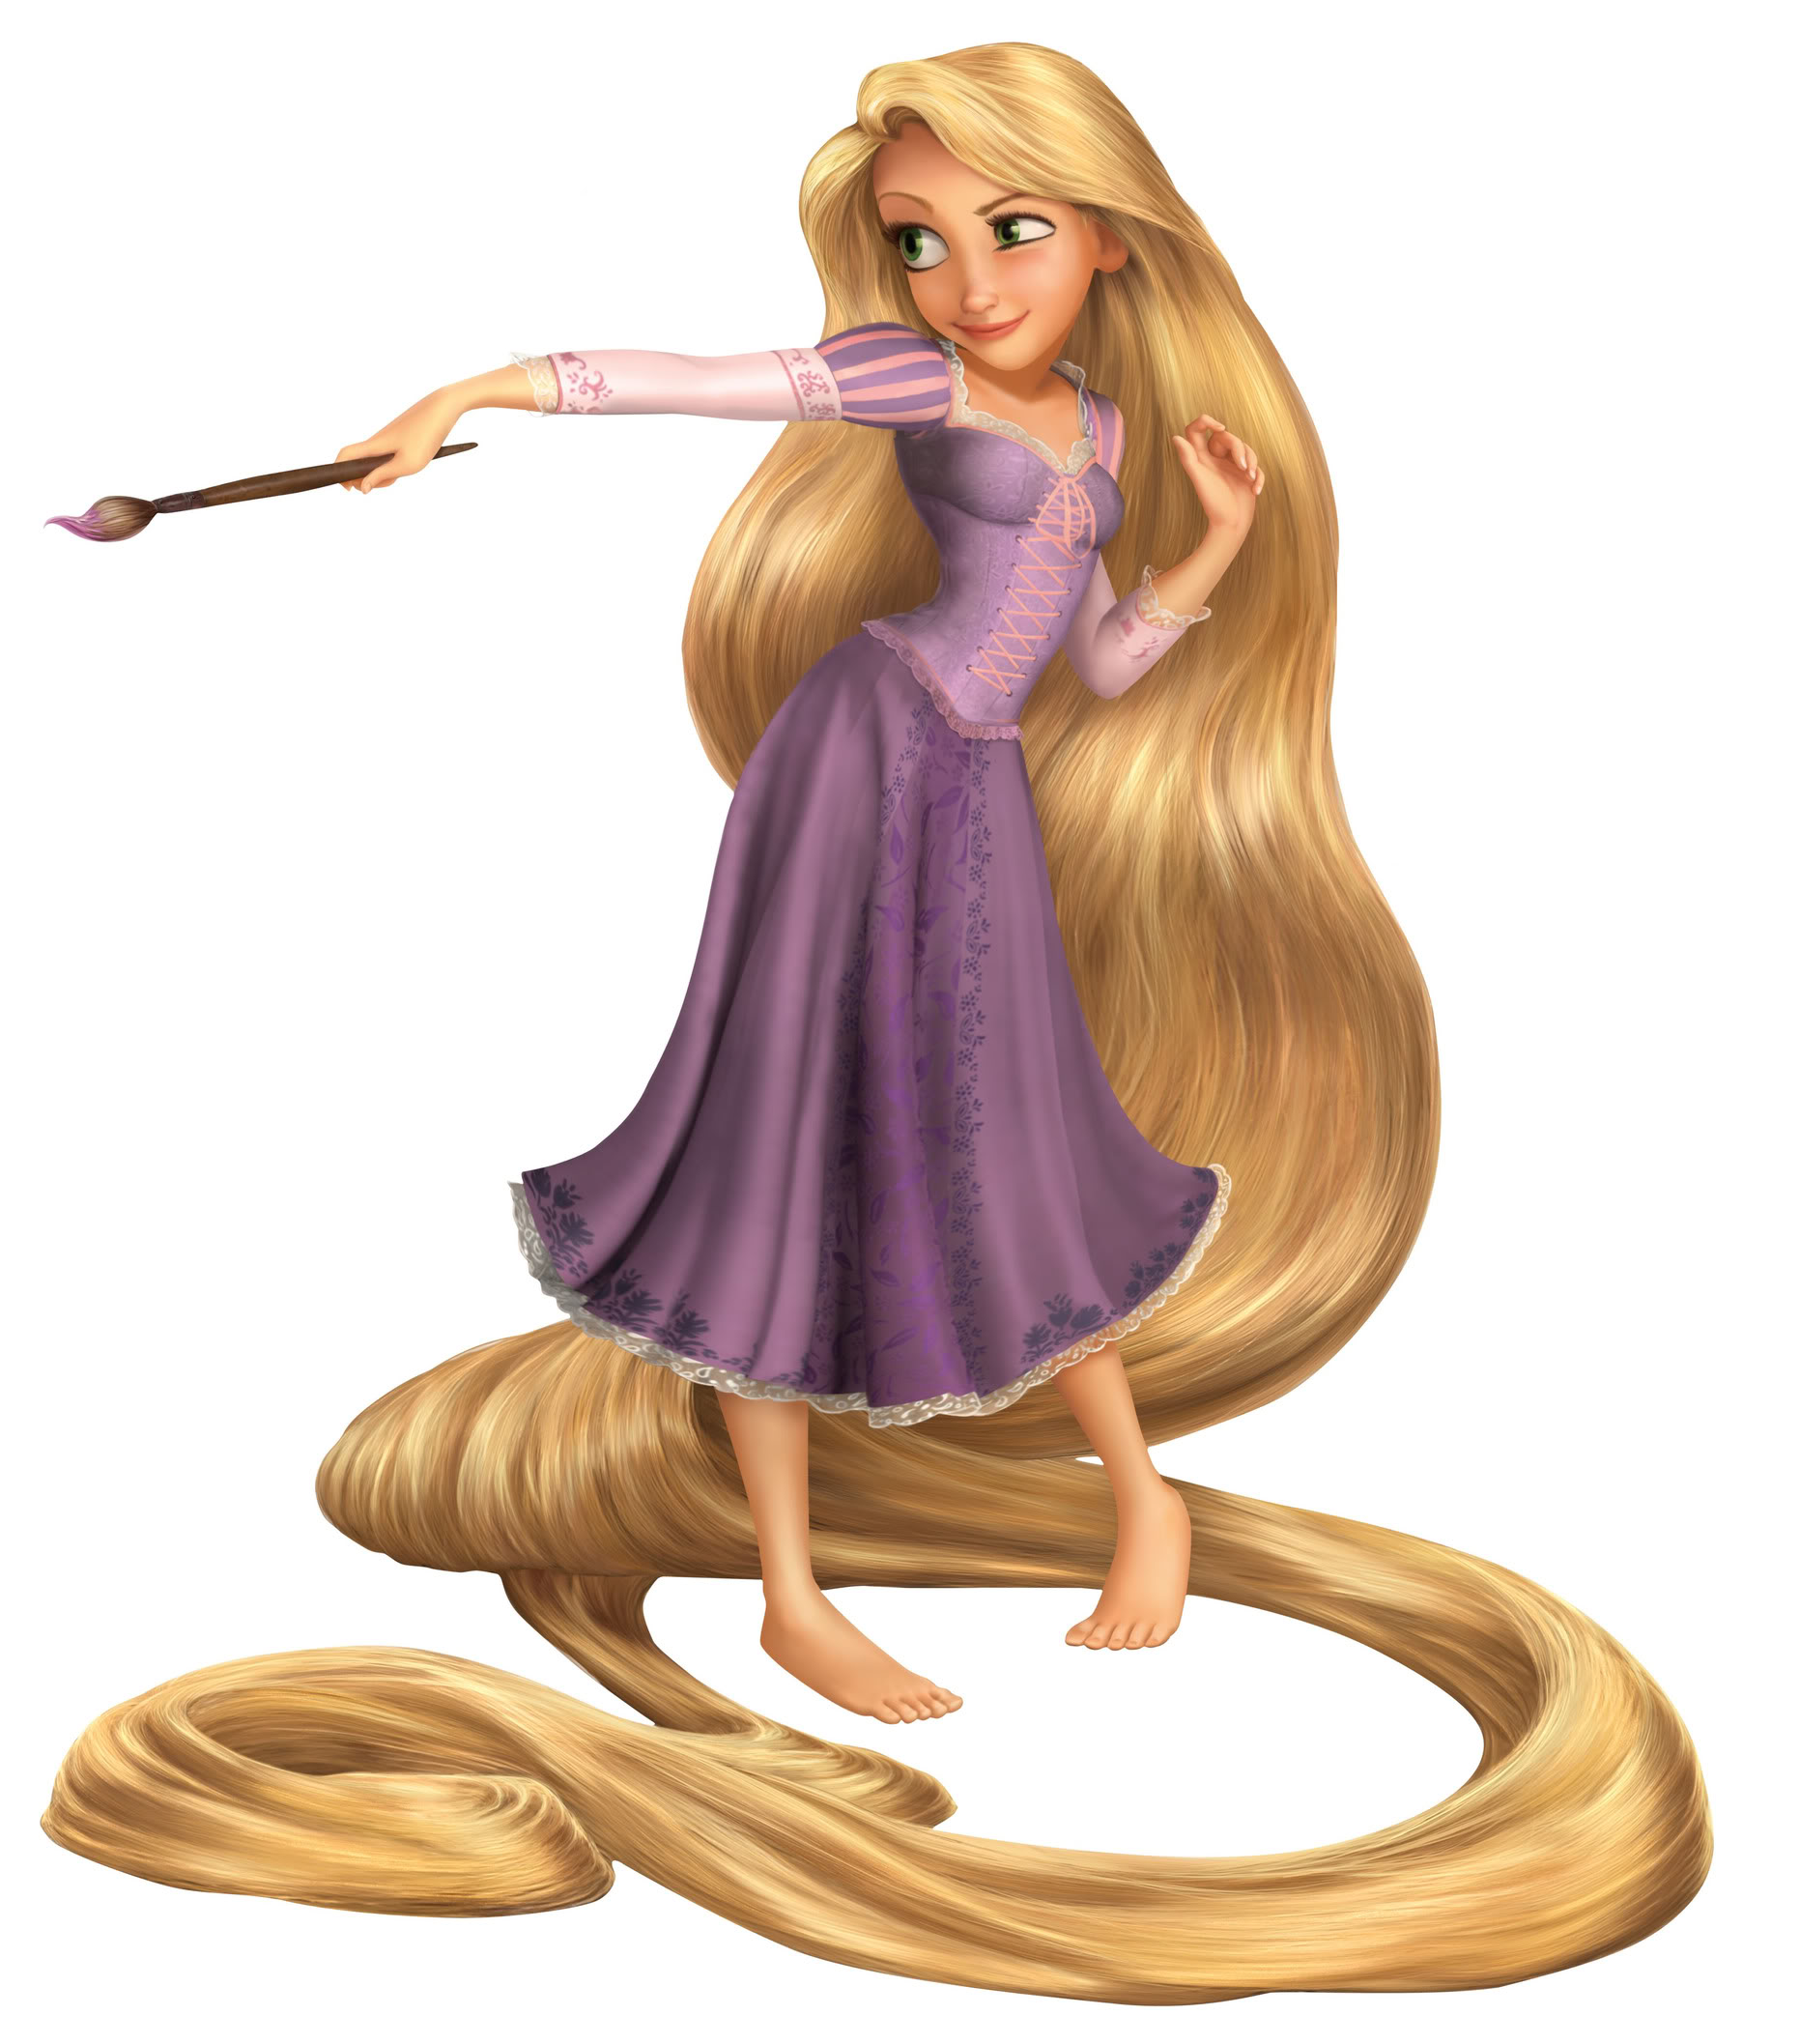 Uncategorized Tangled Rapunzel Hair rapunzel super smash bros tourney wiki fandom powered by wikia rapunzel